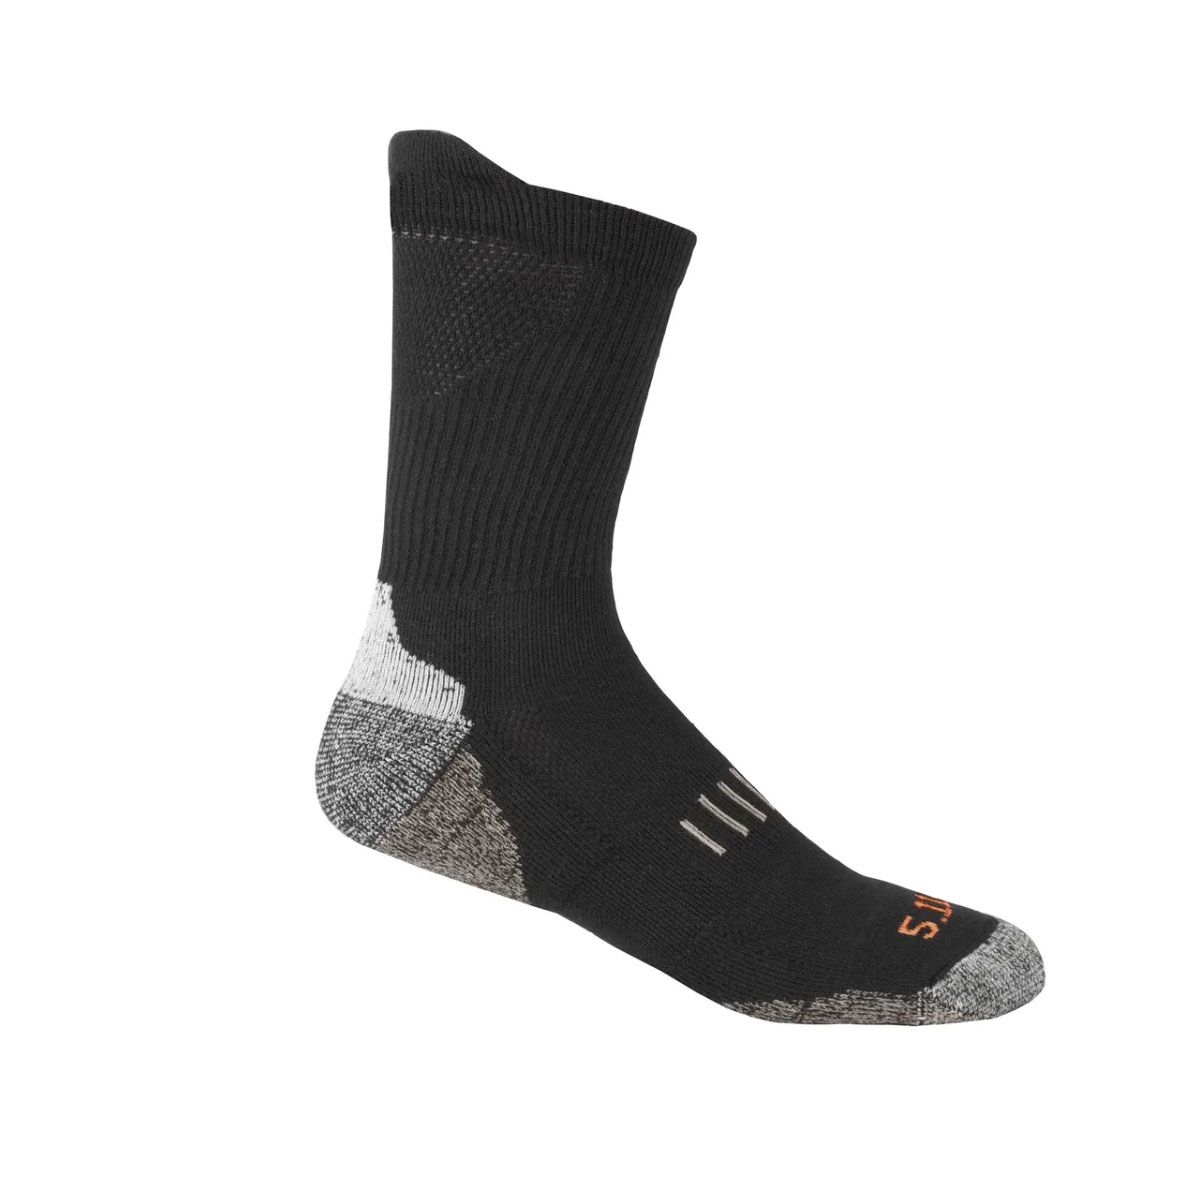 Meia Year Round Crew Sock Black L/XL 5.11 Tactical